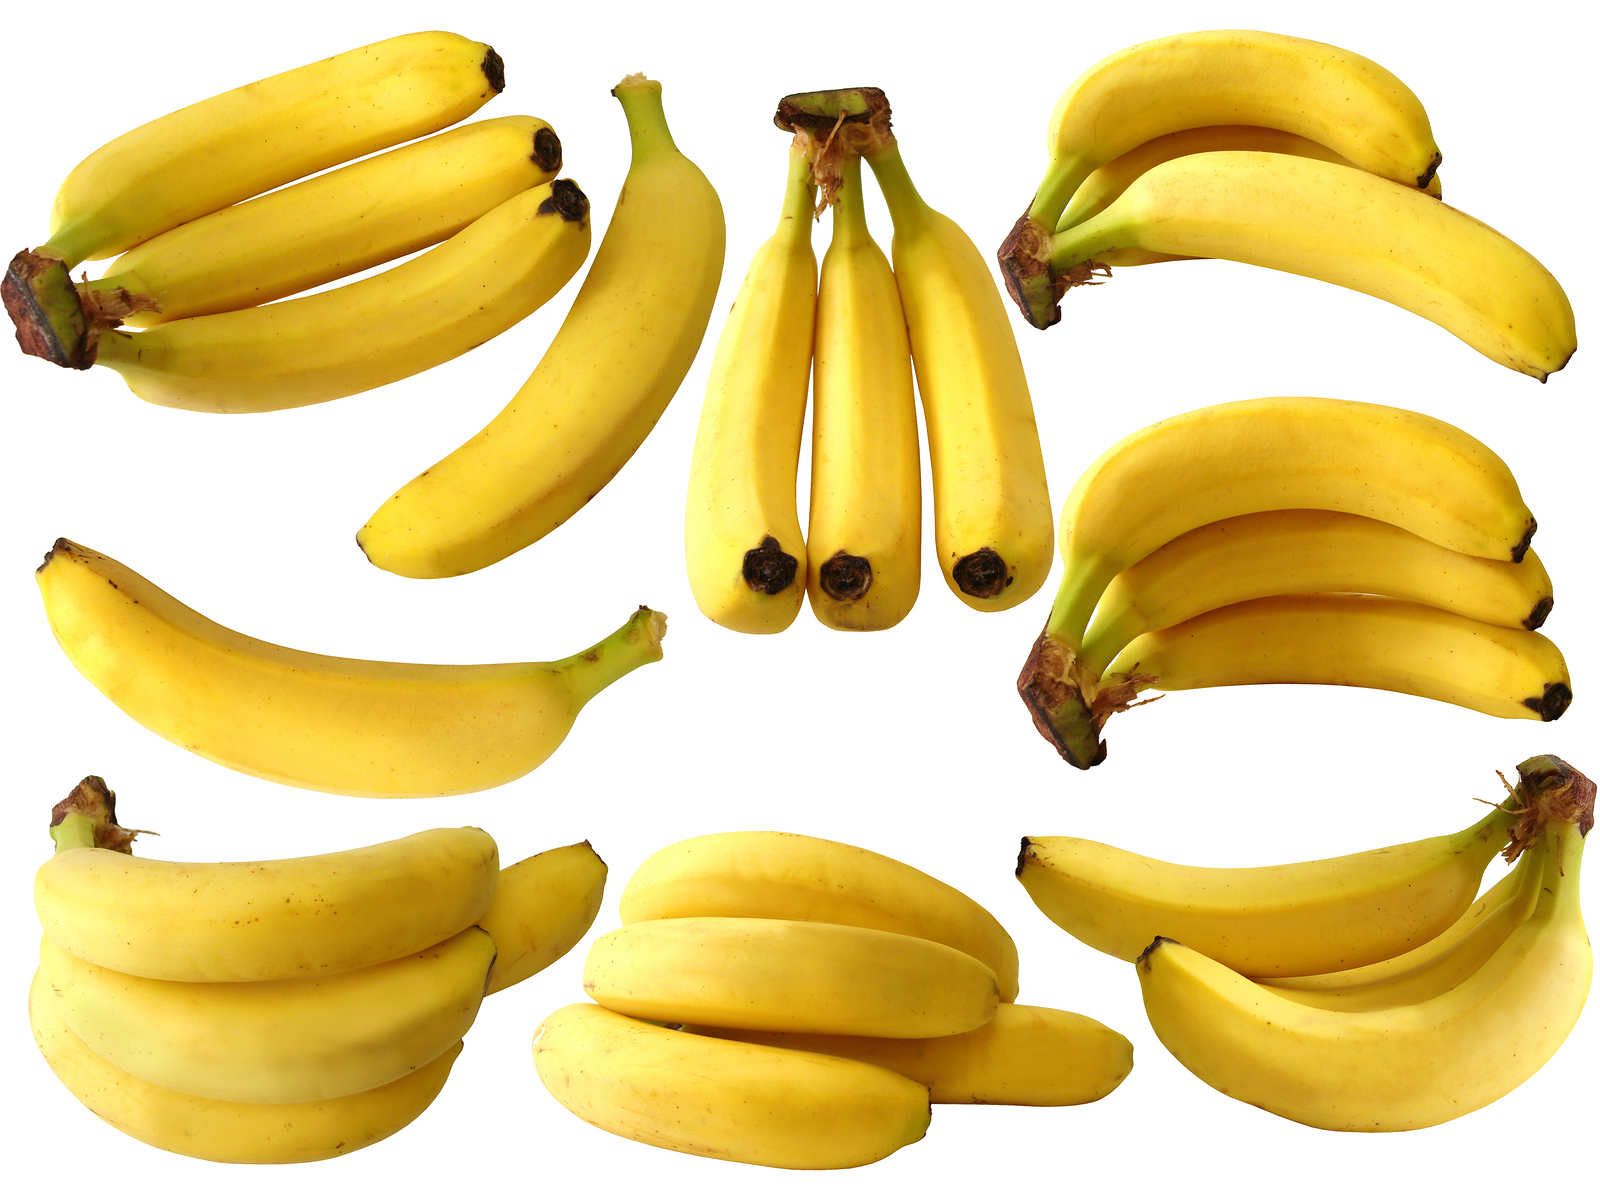 Bananas Images HD Wallpaper And Background Photos